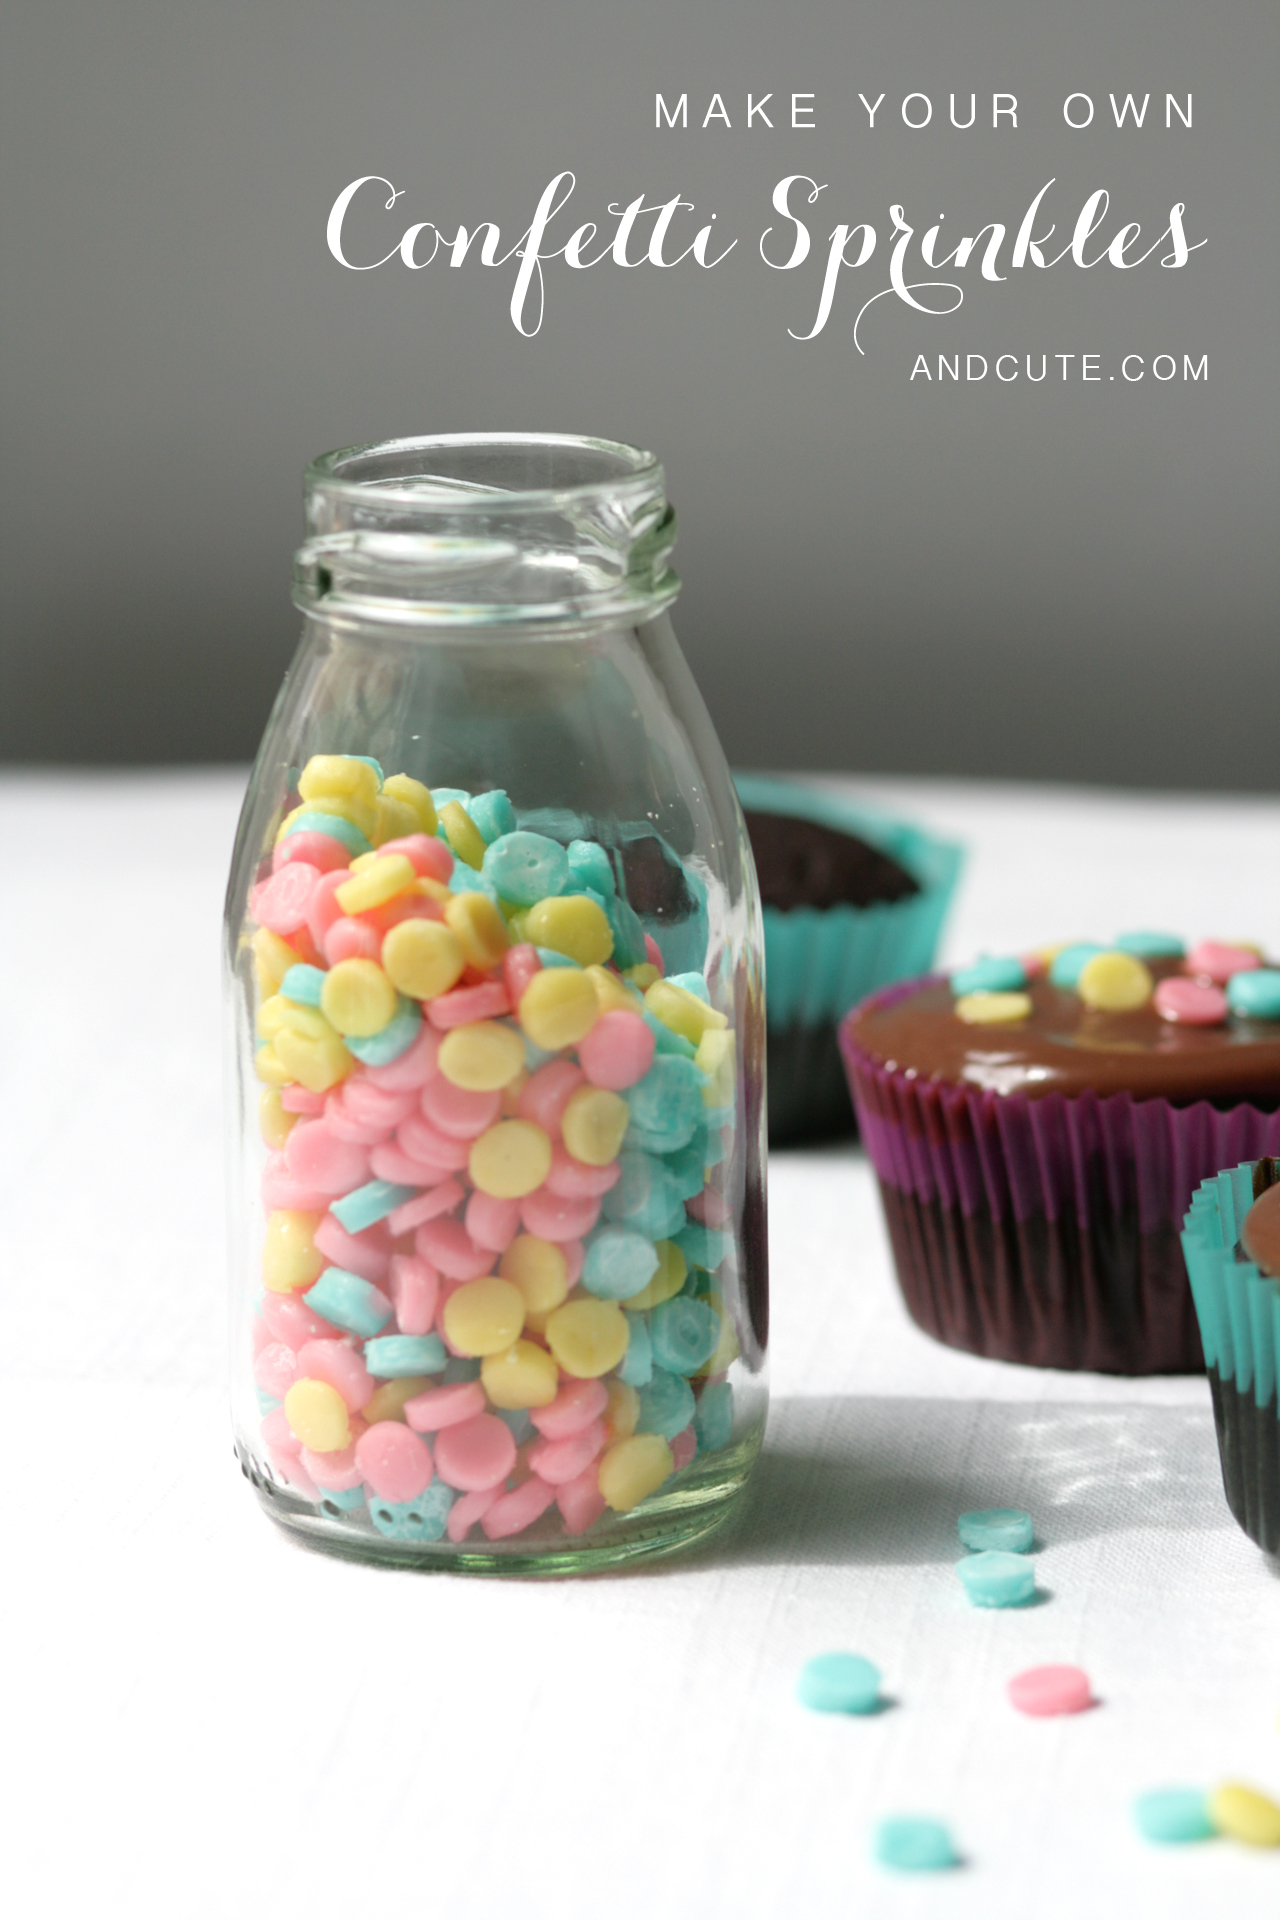 Make your own Bottle of Homemade Confetti Sprinkles